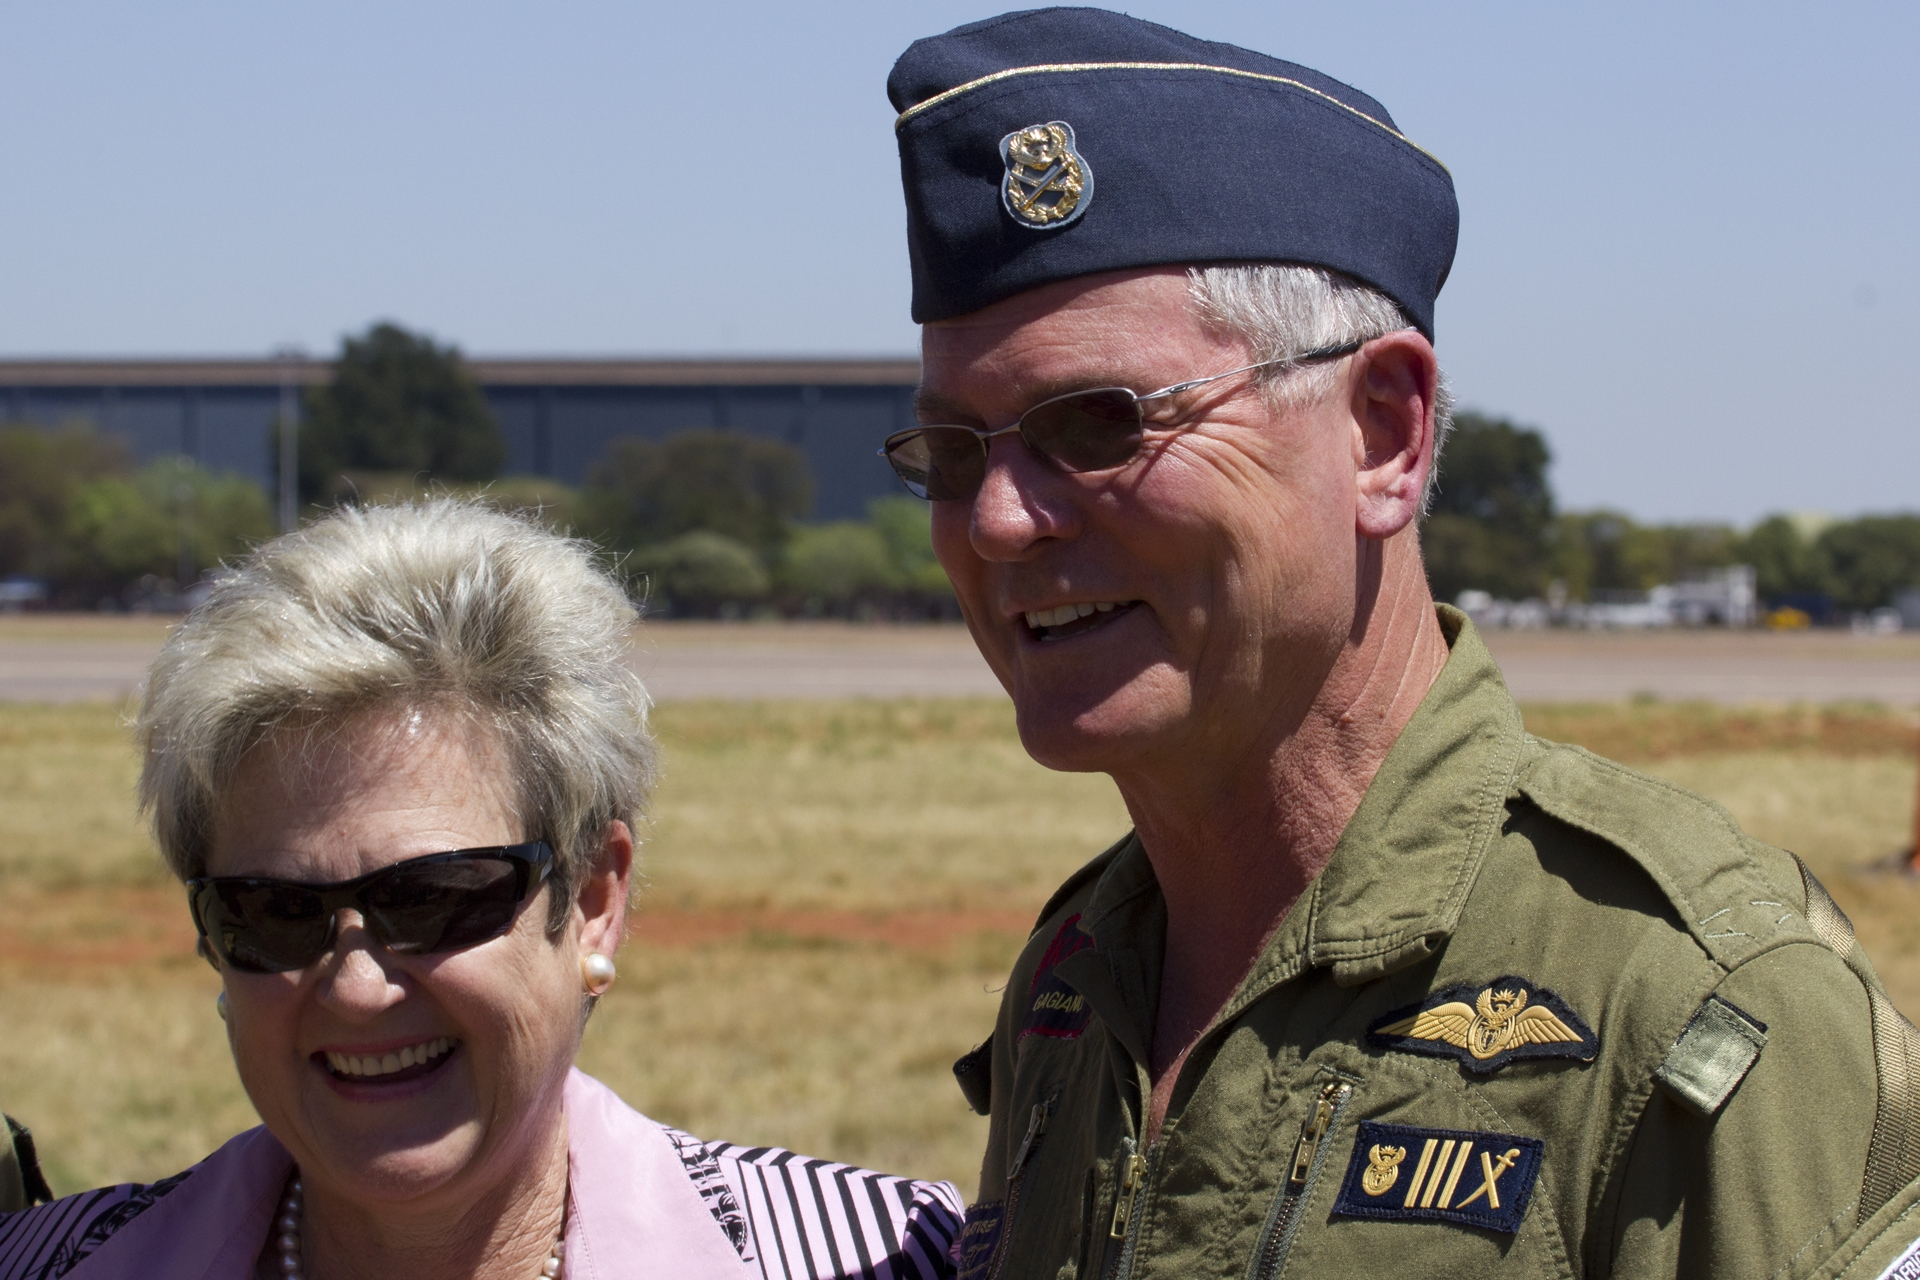 South Africa Airforce General